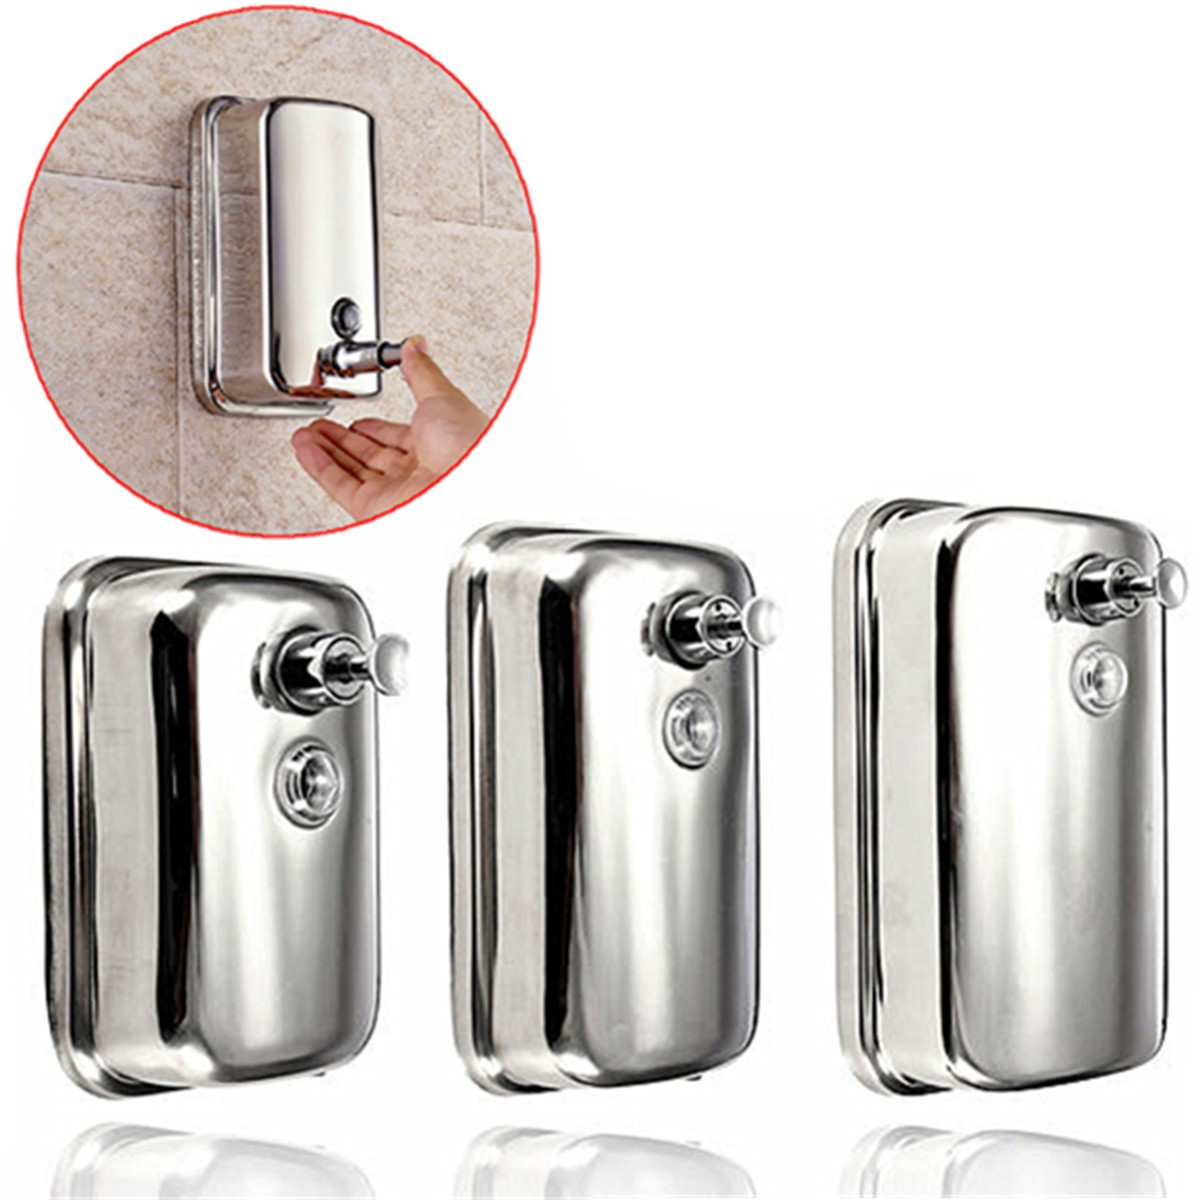 500ml 800ml 1000ml Stainless Steel Soap/Shampoo Dispenser Pump Action Wall Mounted Shower Bath No Leakage Durable Cost Savings500ml 800ml 1000ml Stainless Steel Soap/Shampoo Dispenser Pump Action Wall Mounted Shower Bath No Leakage Durable Cost Savings